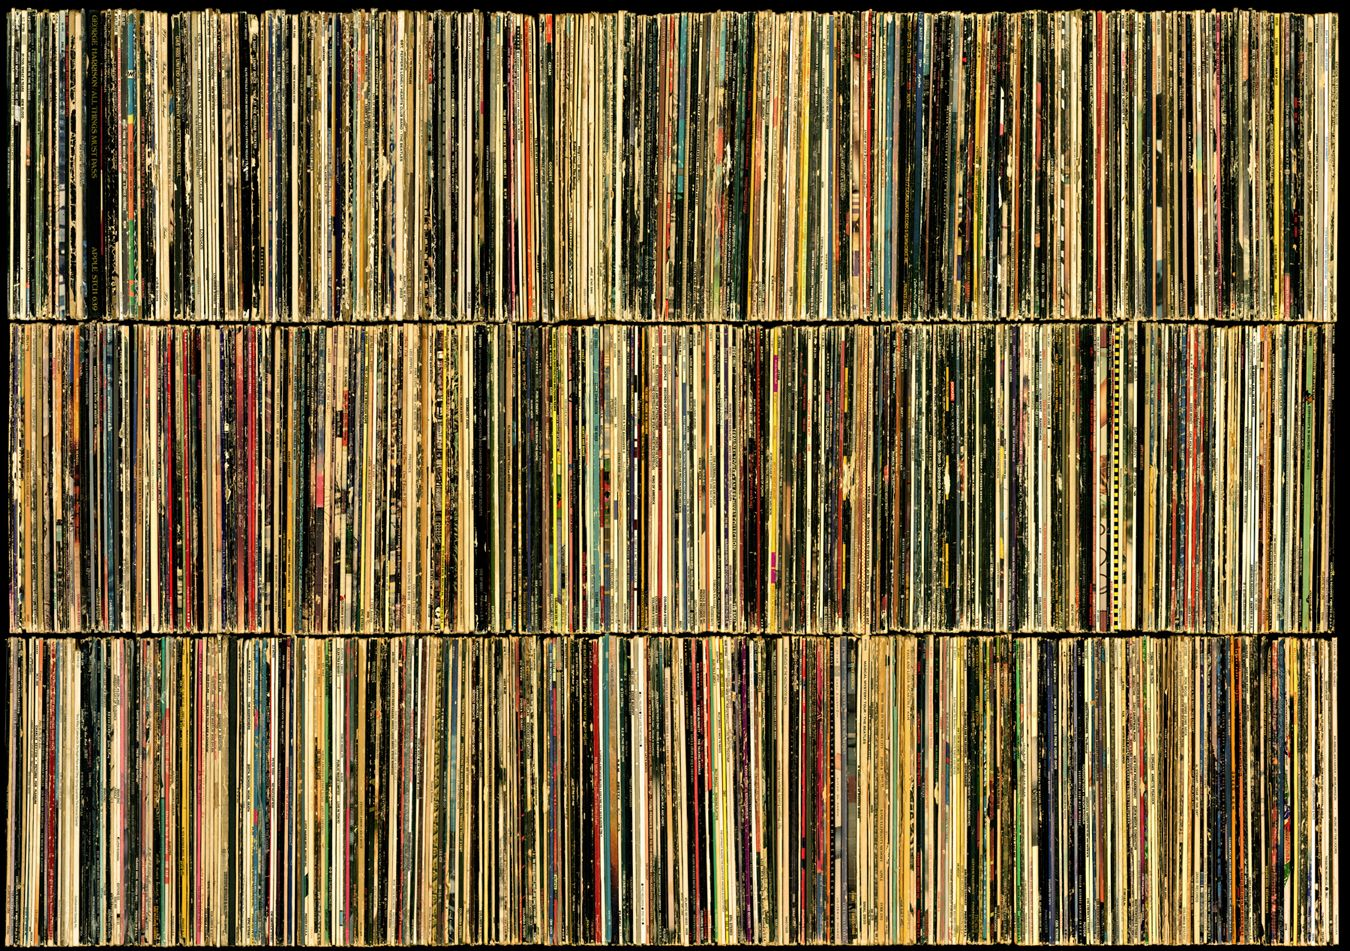 Wall Of Vinyl Artwork I Like This Better Than The Record Covers Under Plastic Because Of The Muted Colors And Because It S Vinyl Artwork Artwork Wall Of Sound